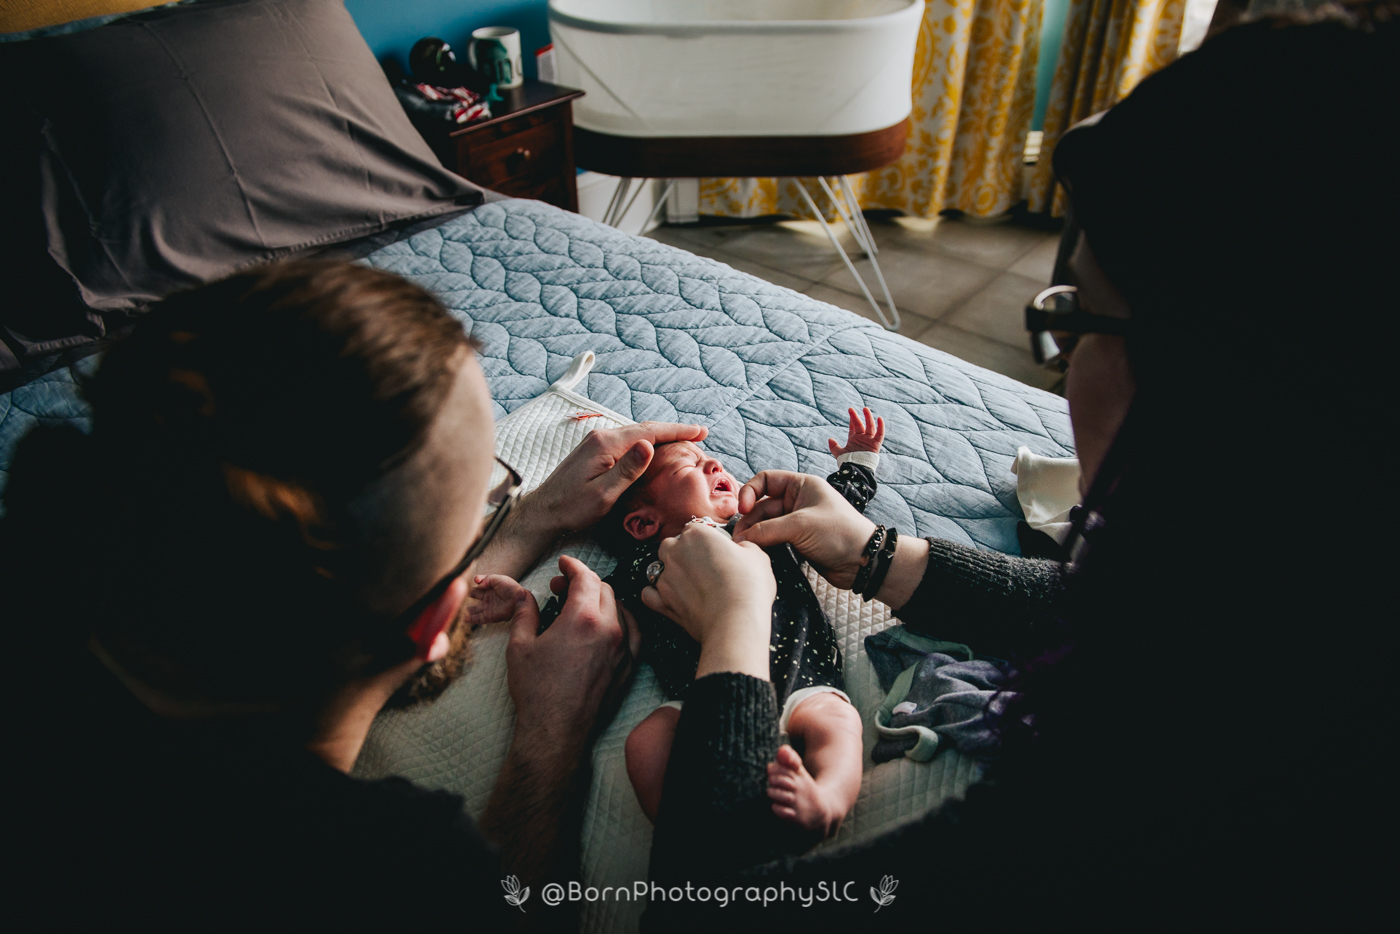 Just-Born-Newborn-Born-Birth-Photography-University-of-Utah-Womens-Health-Hospital-Birth-Salt-Lake-City,-Central-City,-Liberty-Park,-Glendale,-Capital-Hill-Avenues,-Greater-Avenues--11.jpg